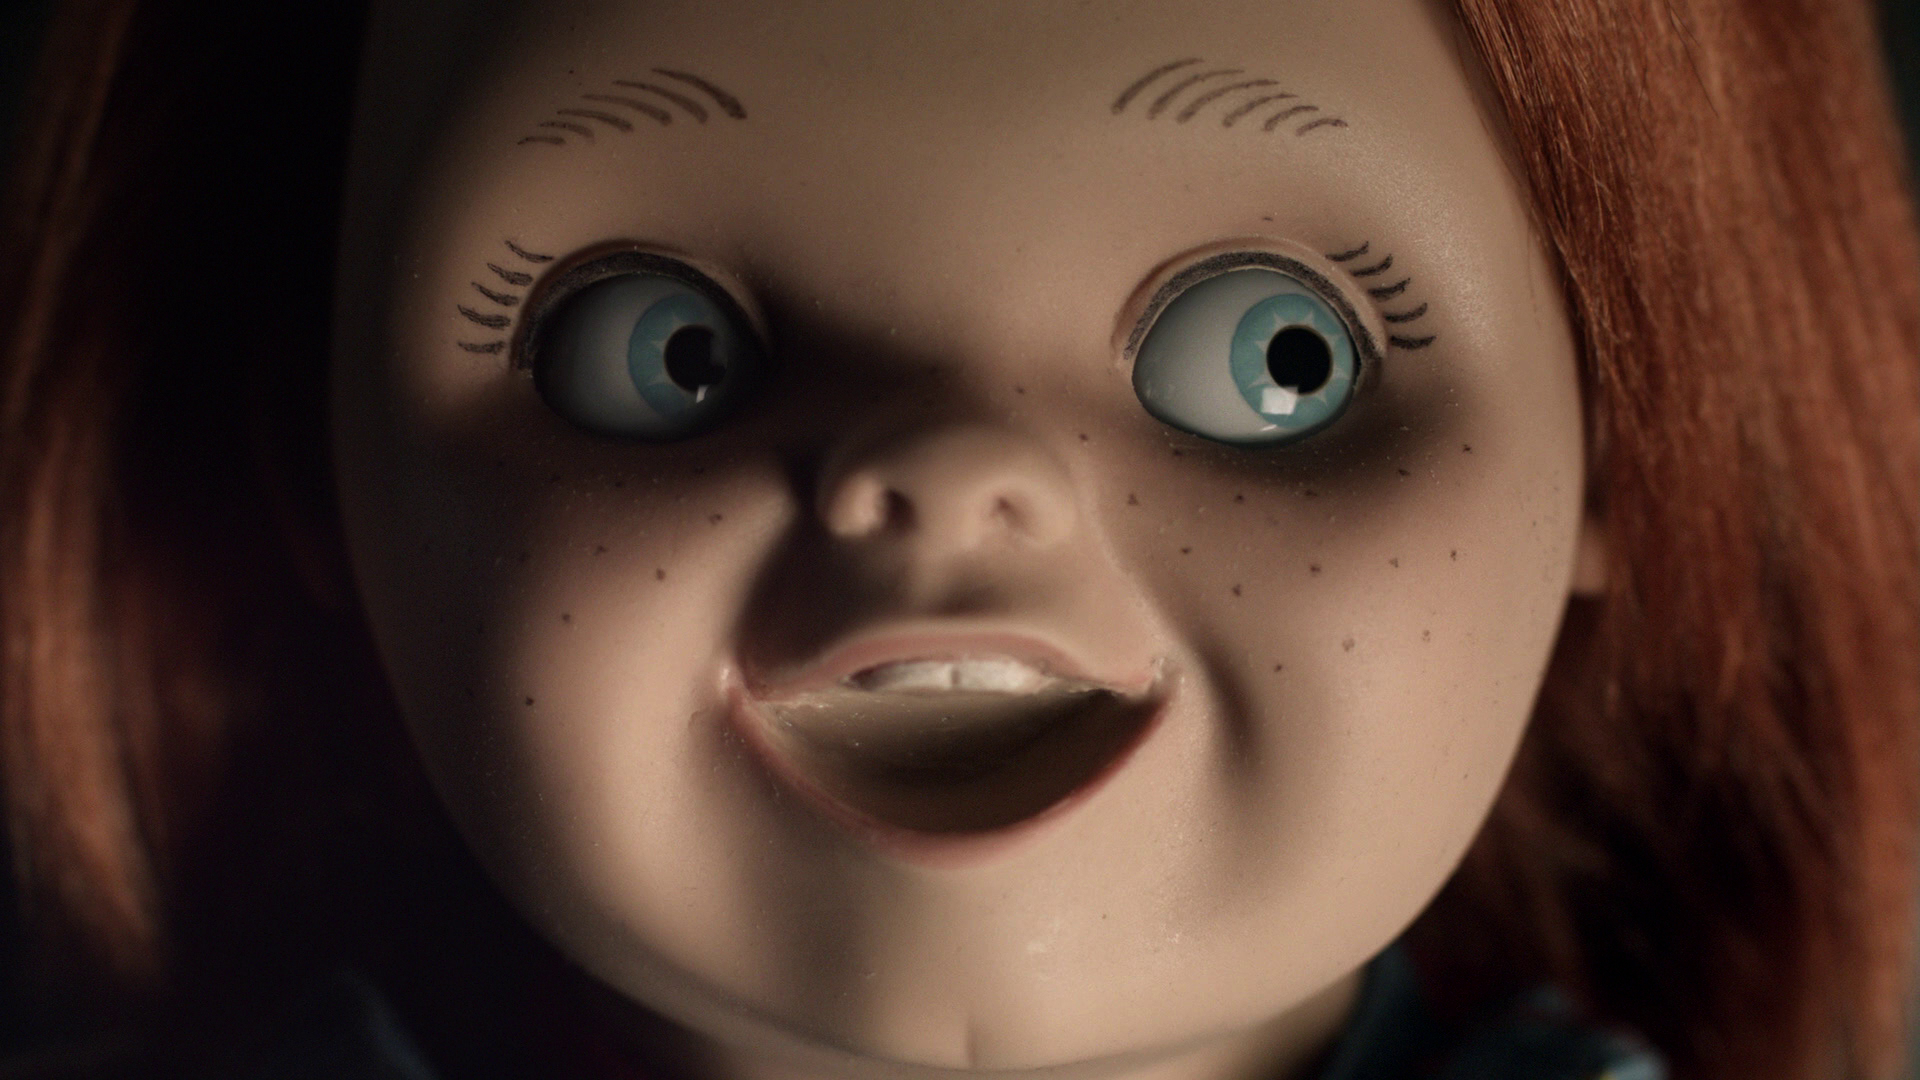 Curse of Chucky (Blu-ray) : DVD Talk Review of the Blu-ray